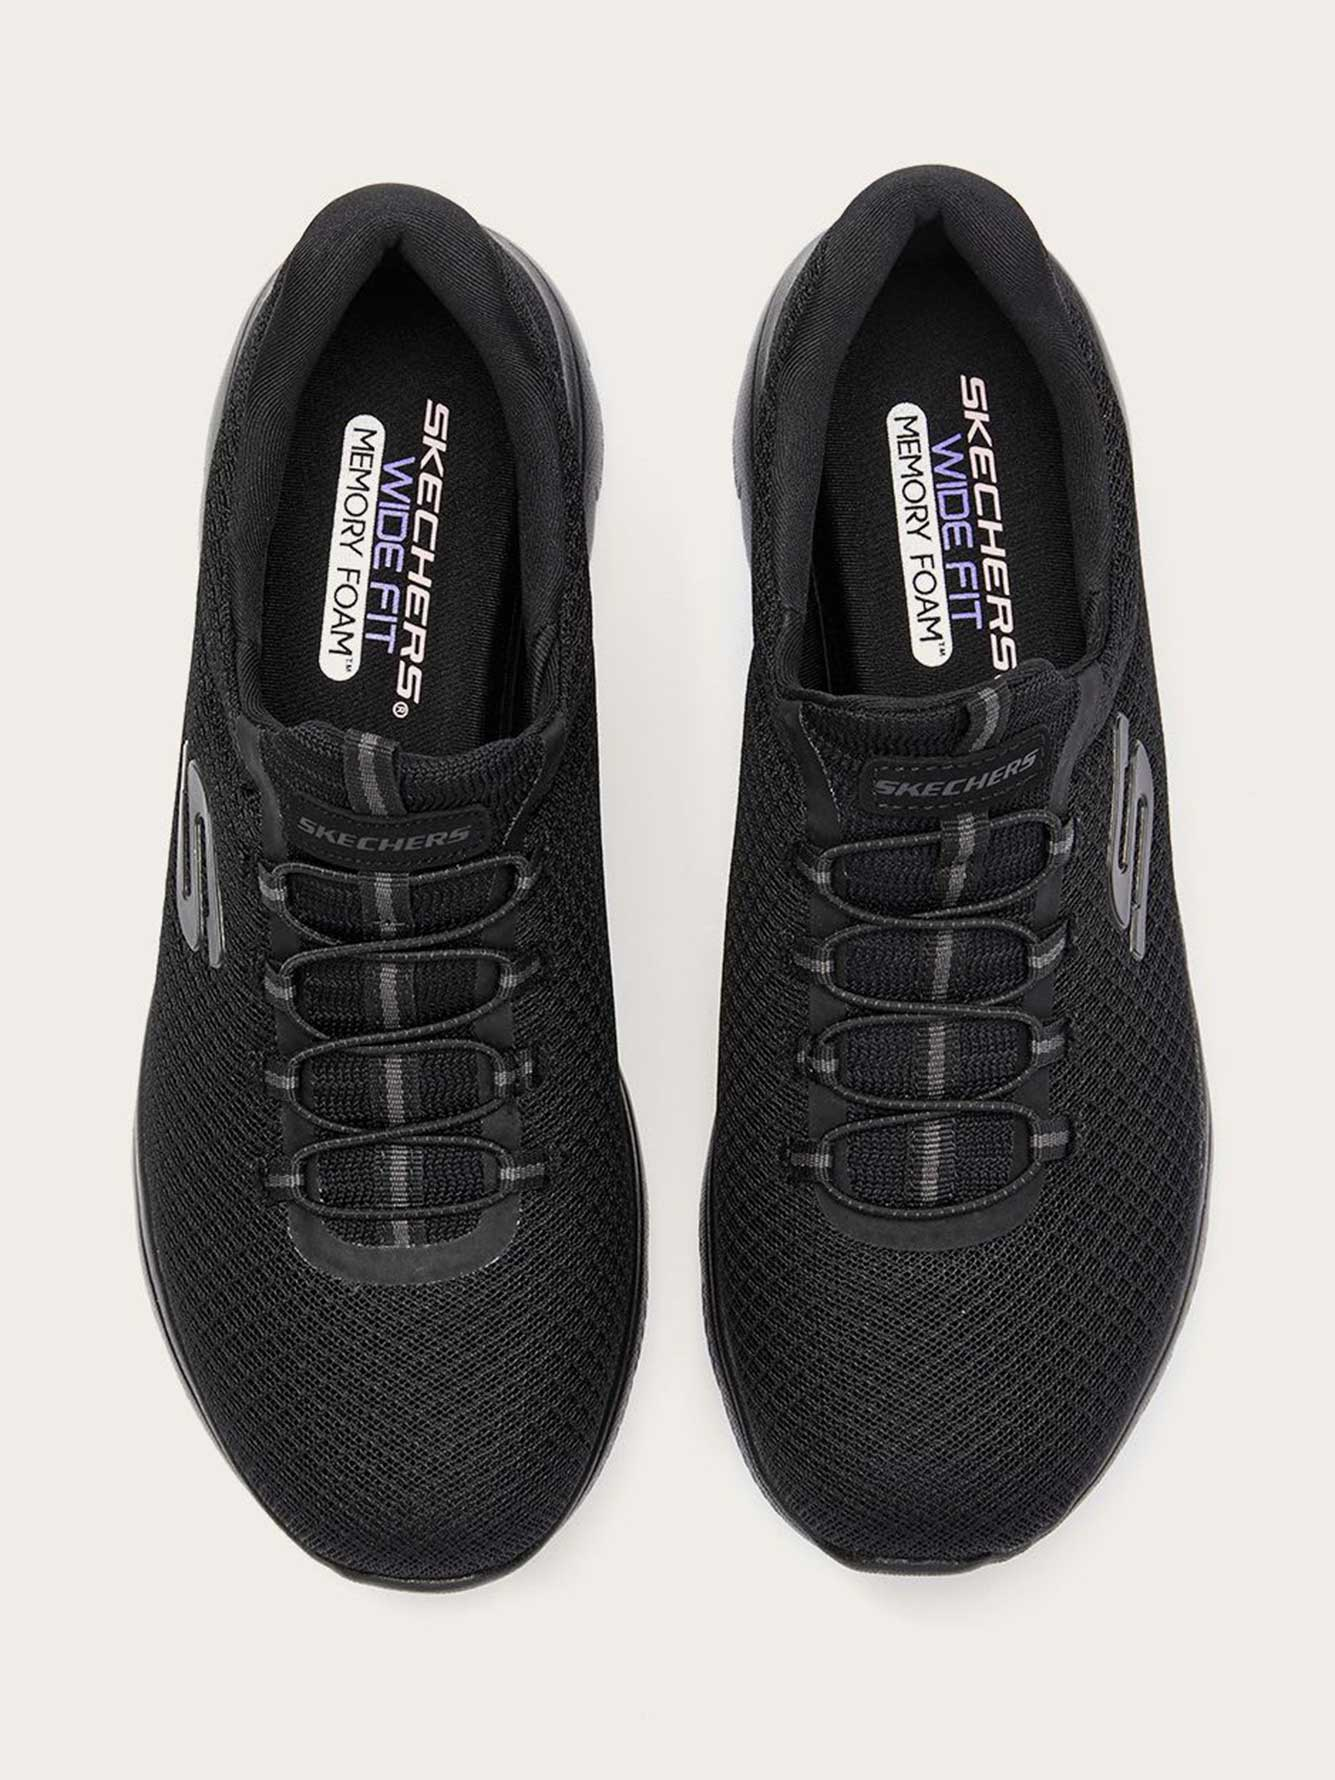 Wide-Width Slip On Sneakers with Mesh